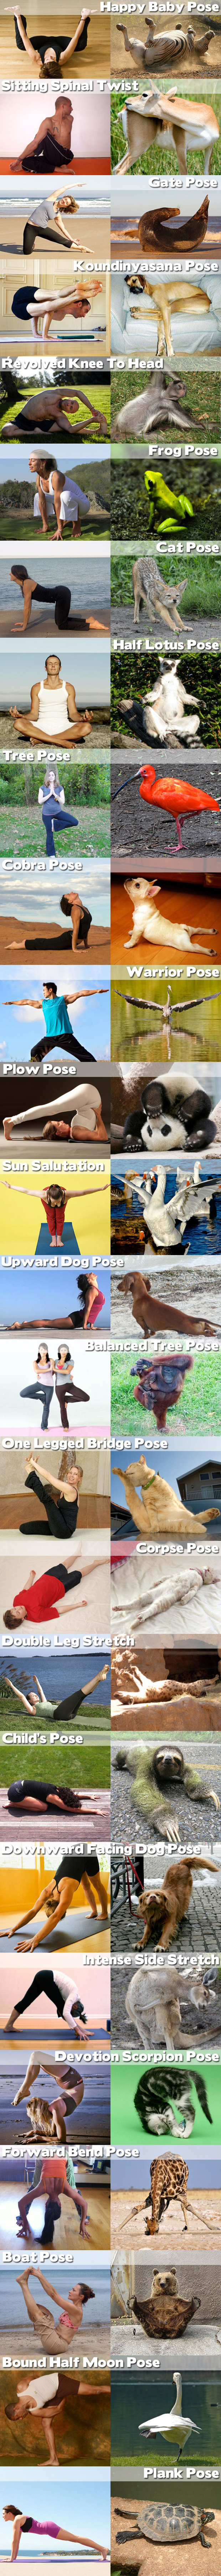 funny animal yoga